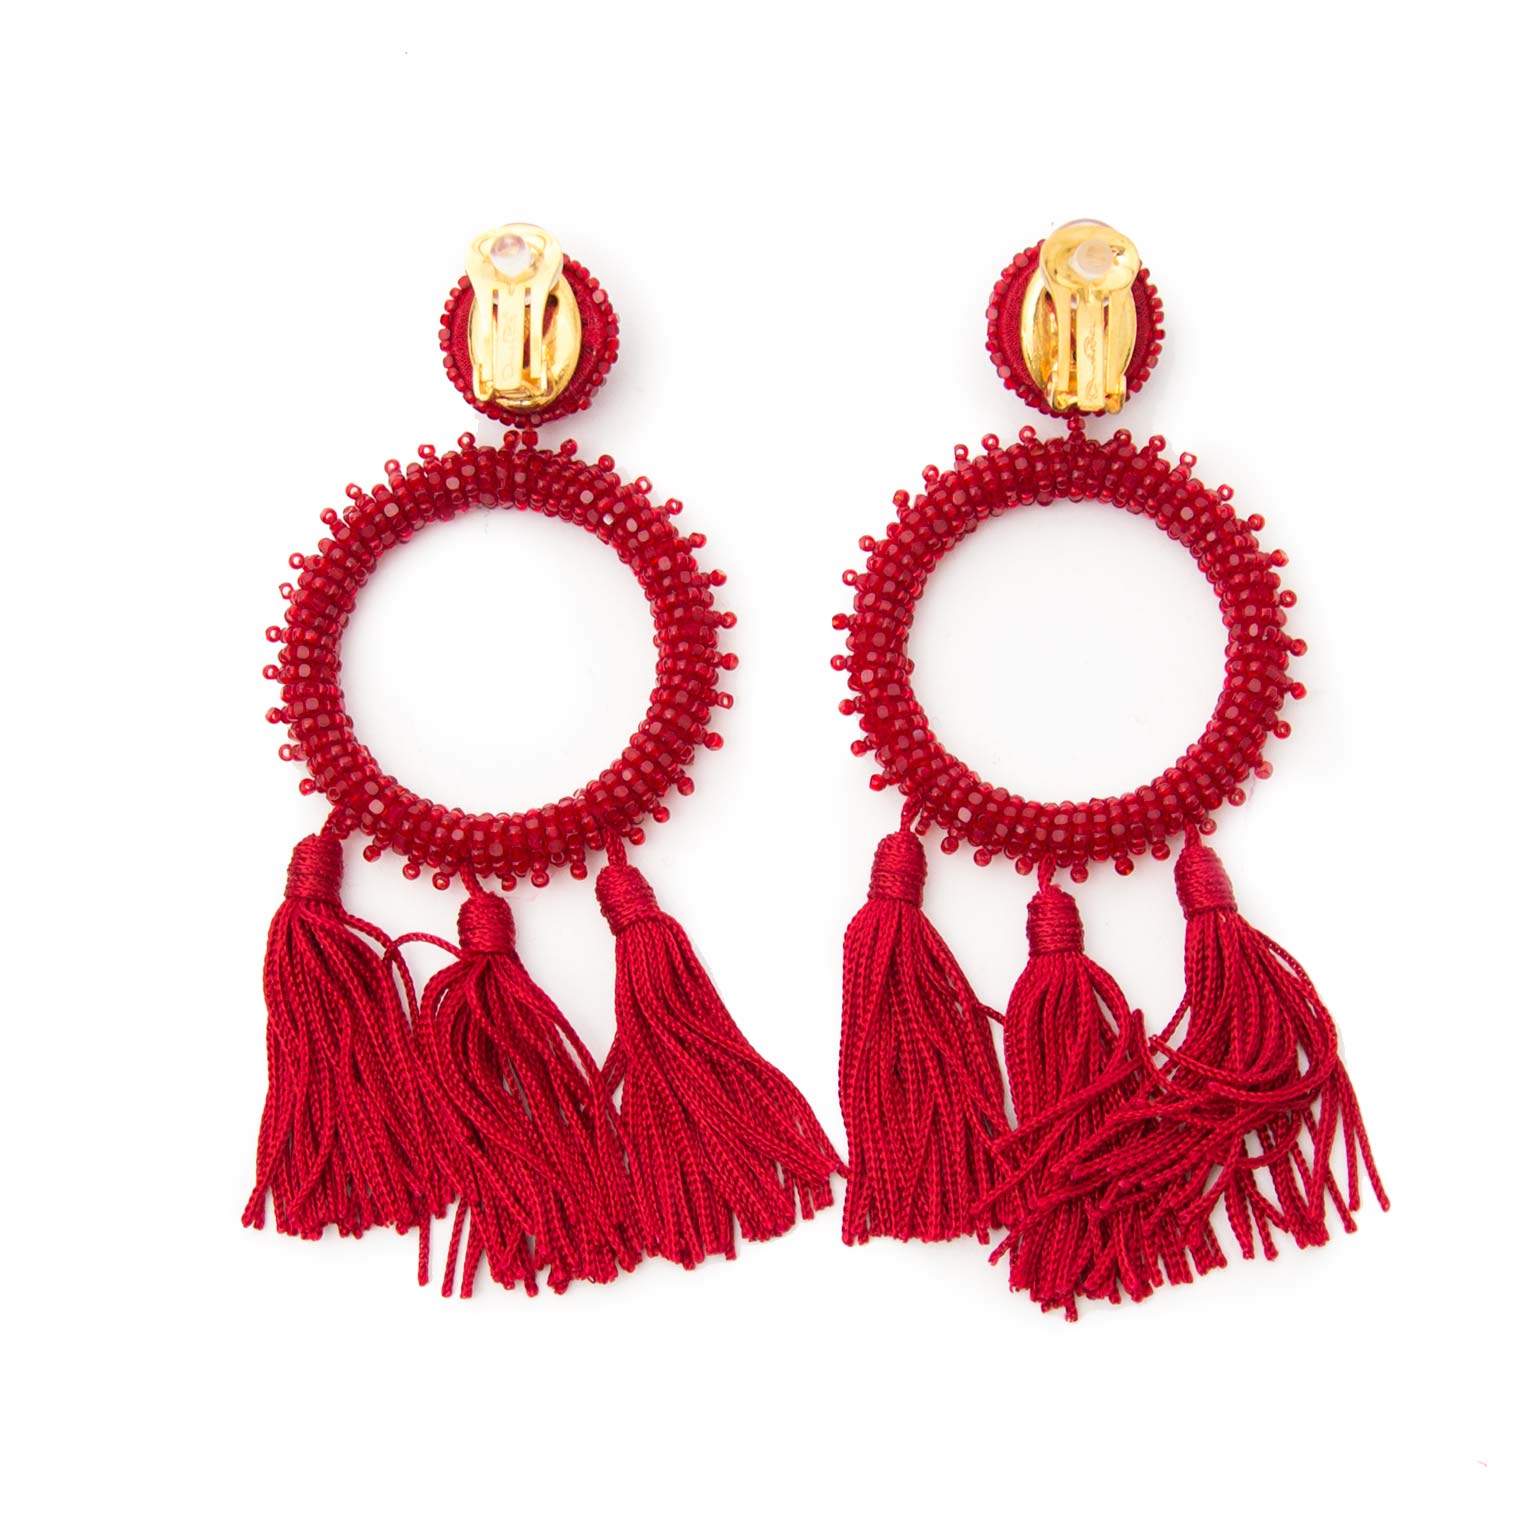 looking for oscar de la renta earrings? Now online at labellov.com for the best price